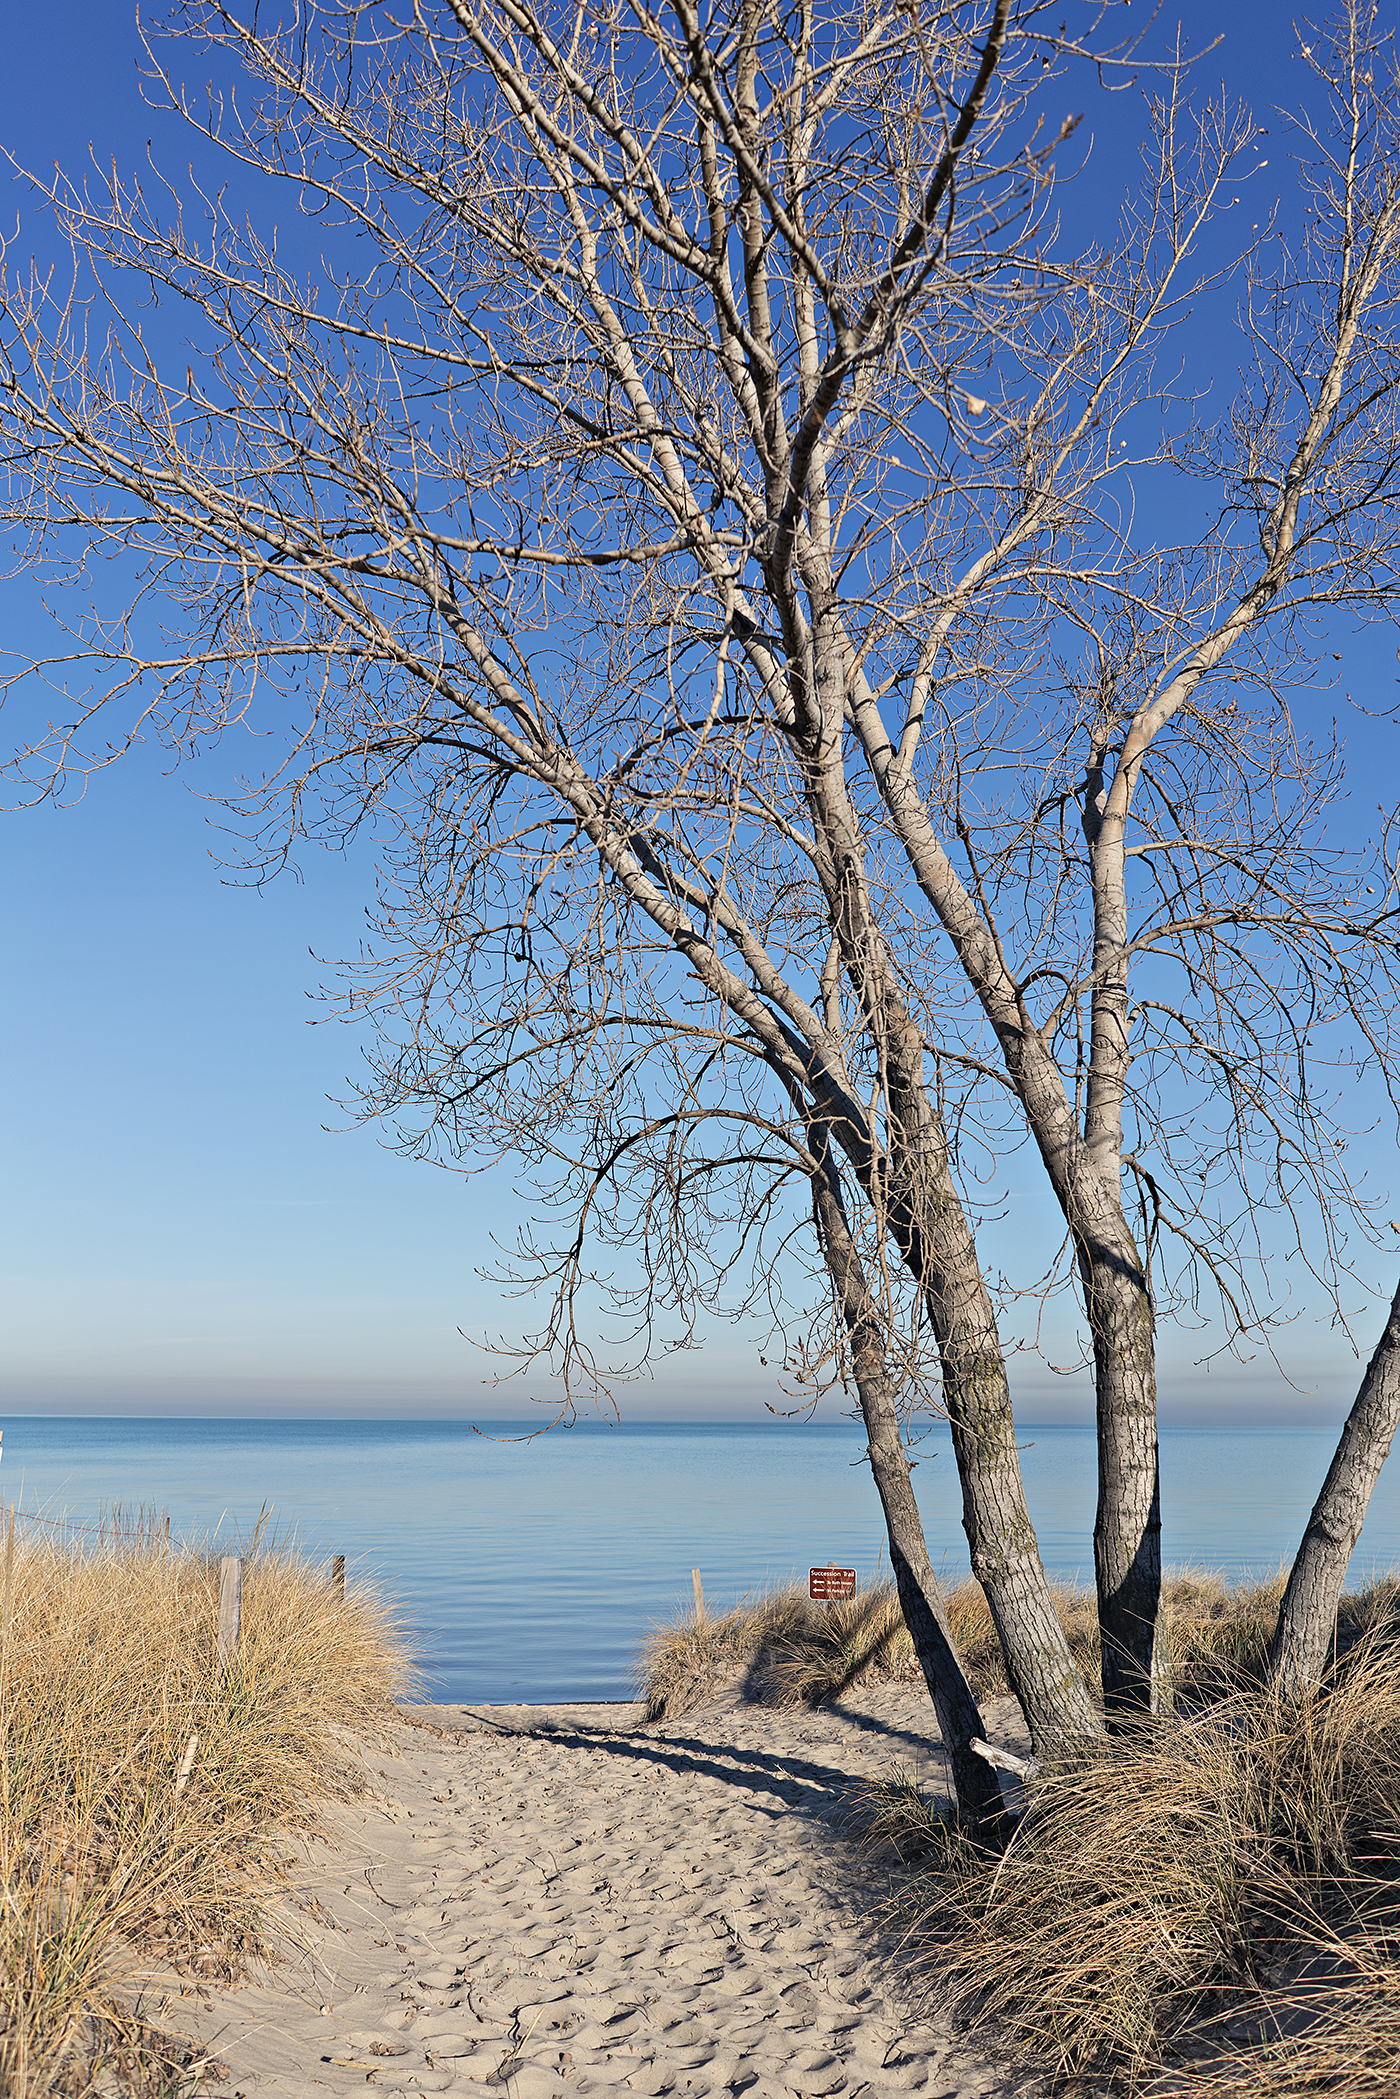 West Beach, The Indiana Dunes, Travel